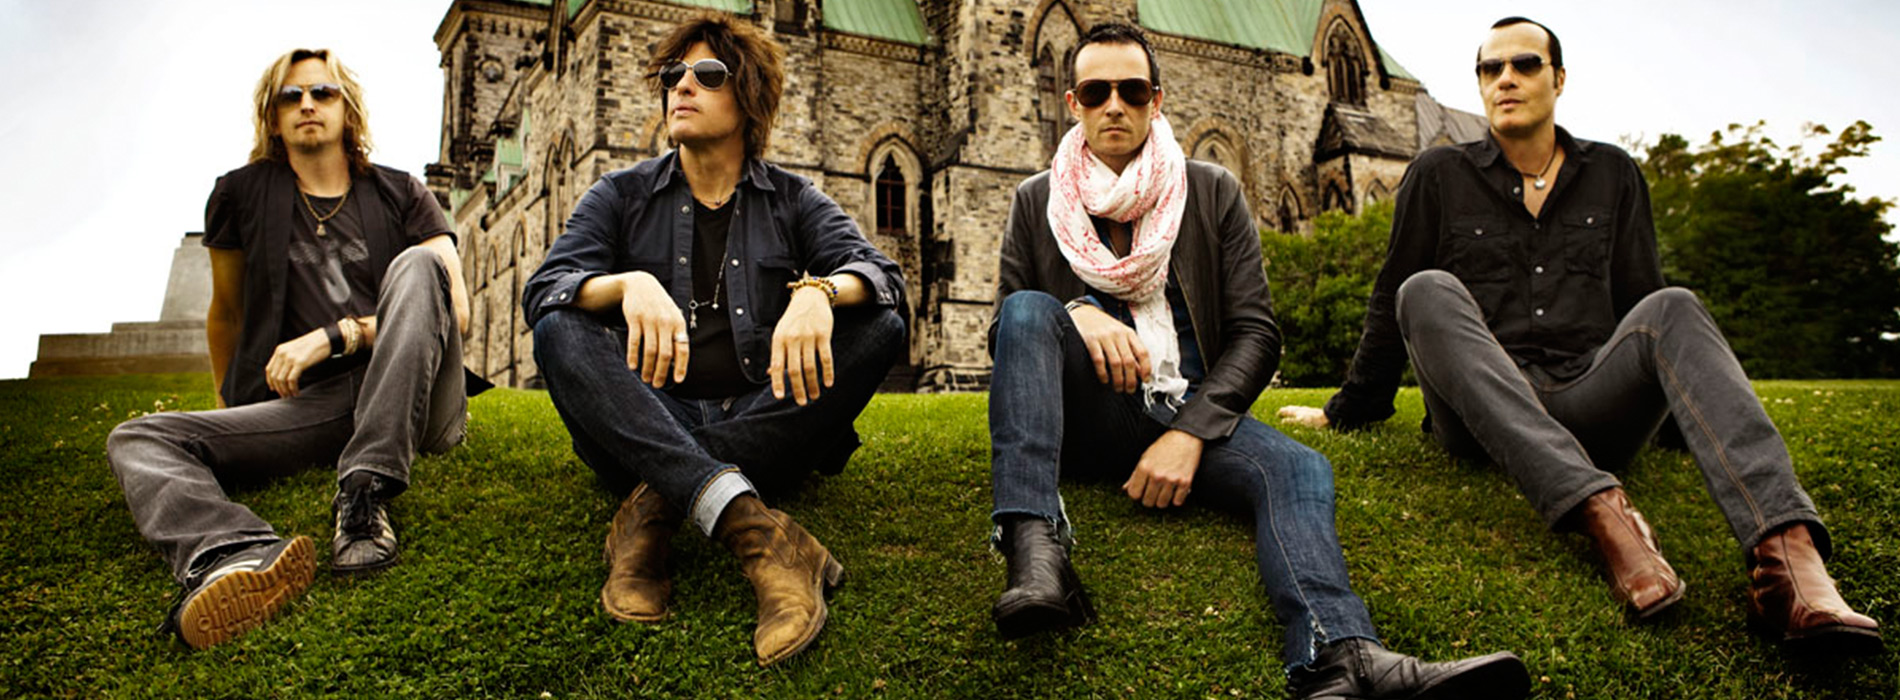 Stone Temple Pilots Backgrounds on Wallpapers Vista